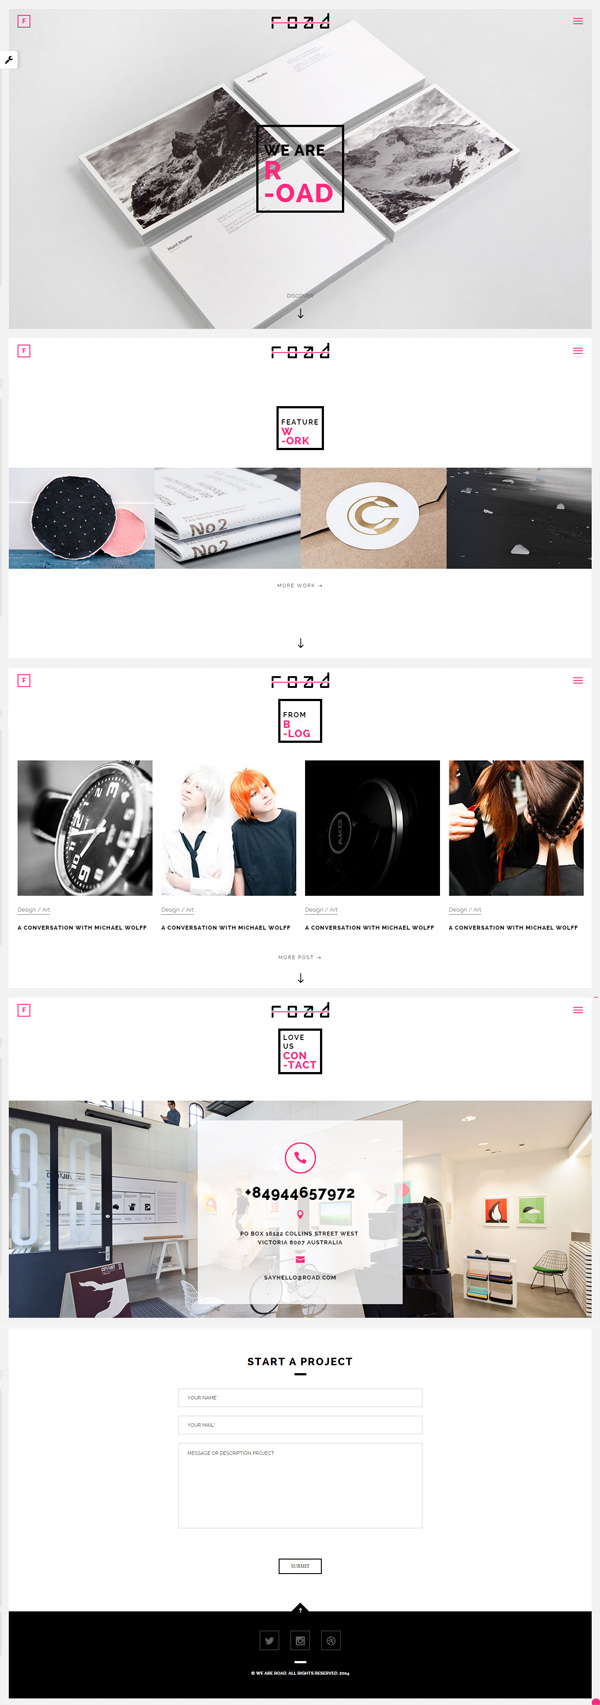 Road - Fullscreen Mutipurpose HTML5 Template